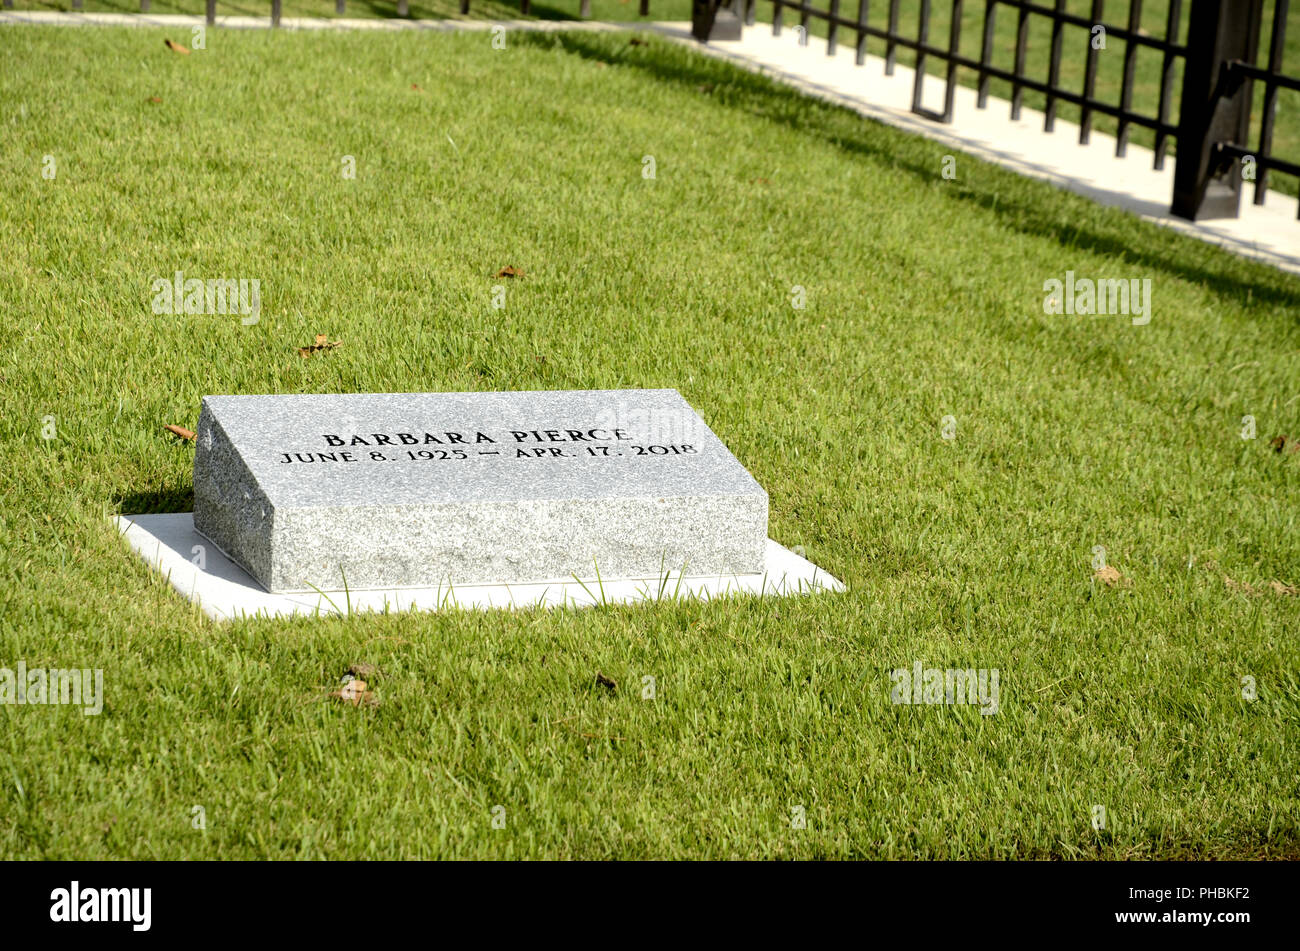 Barbara Bush Burial Site At The George Bush Presidential Library On